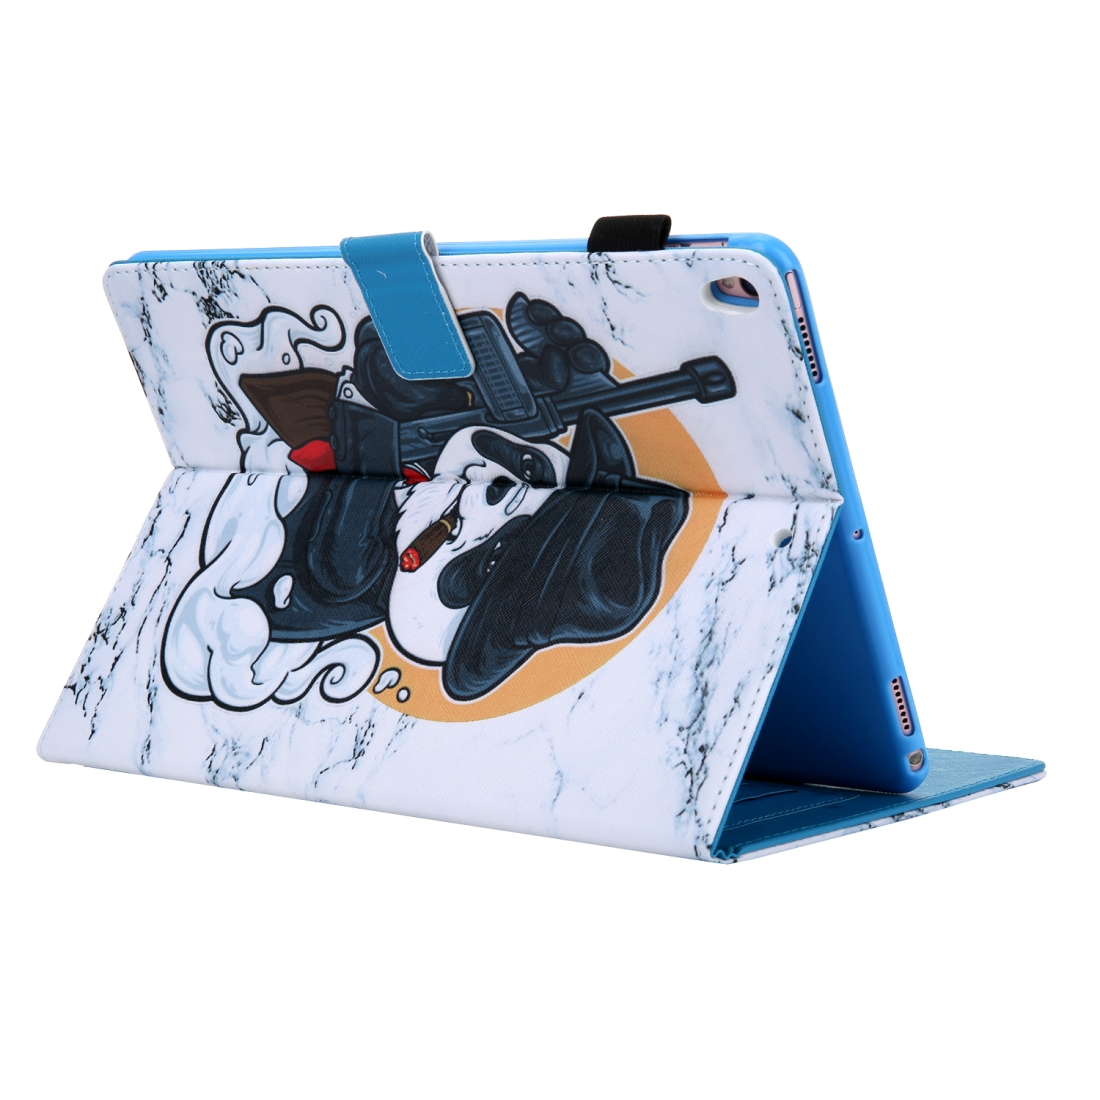 3D Leather Case with Sleeve  iPad 10.5 Case (Panda)